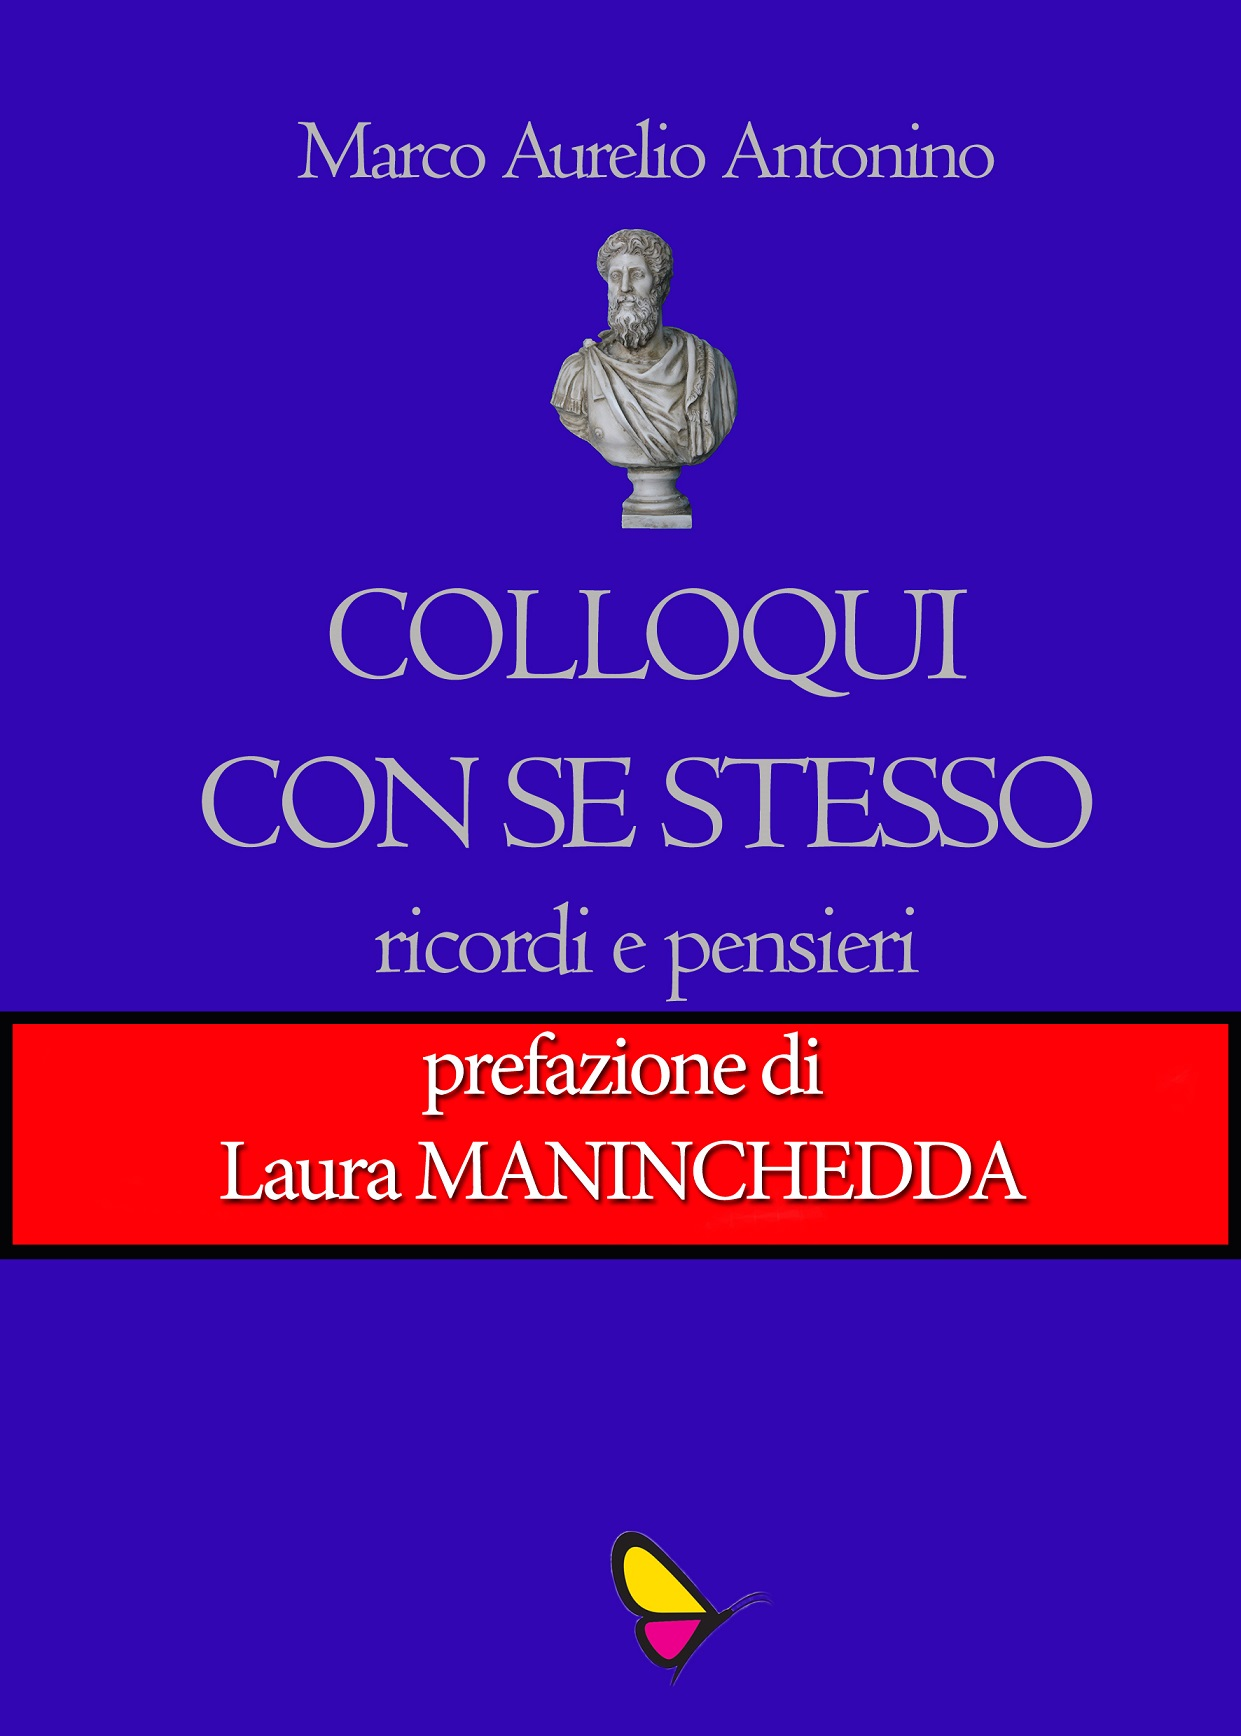 colloqui isbn